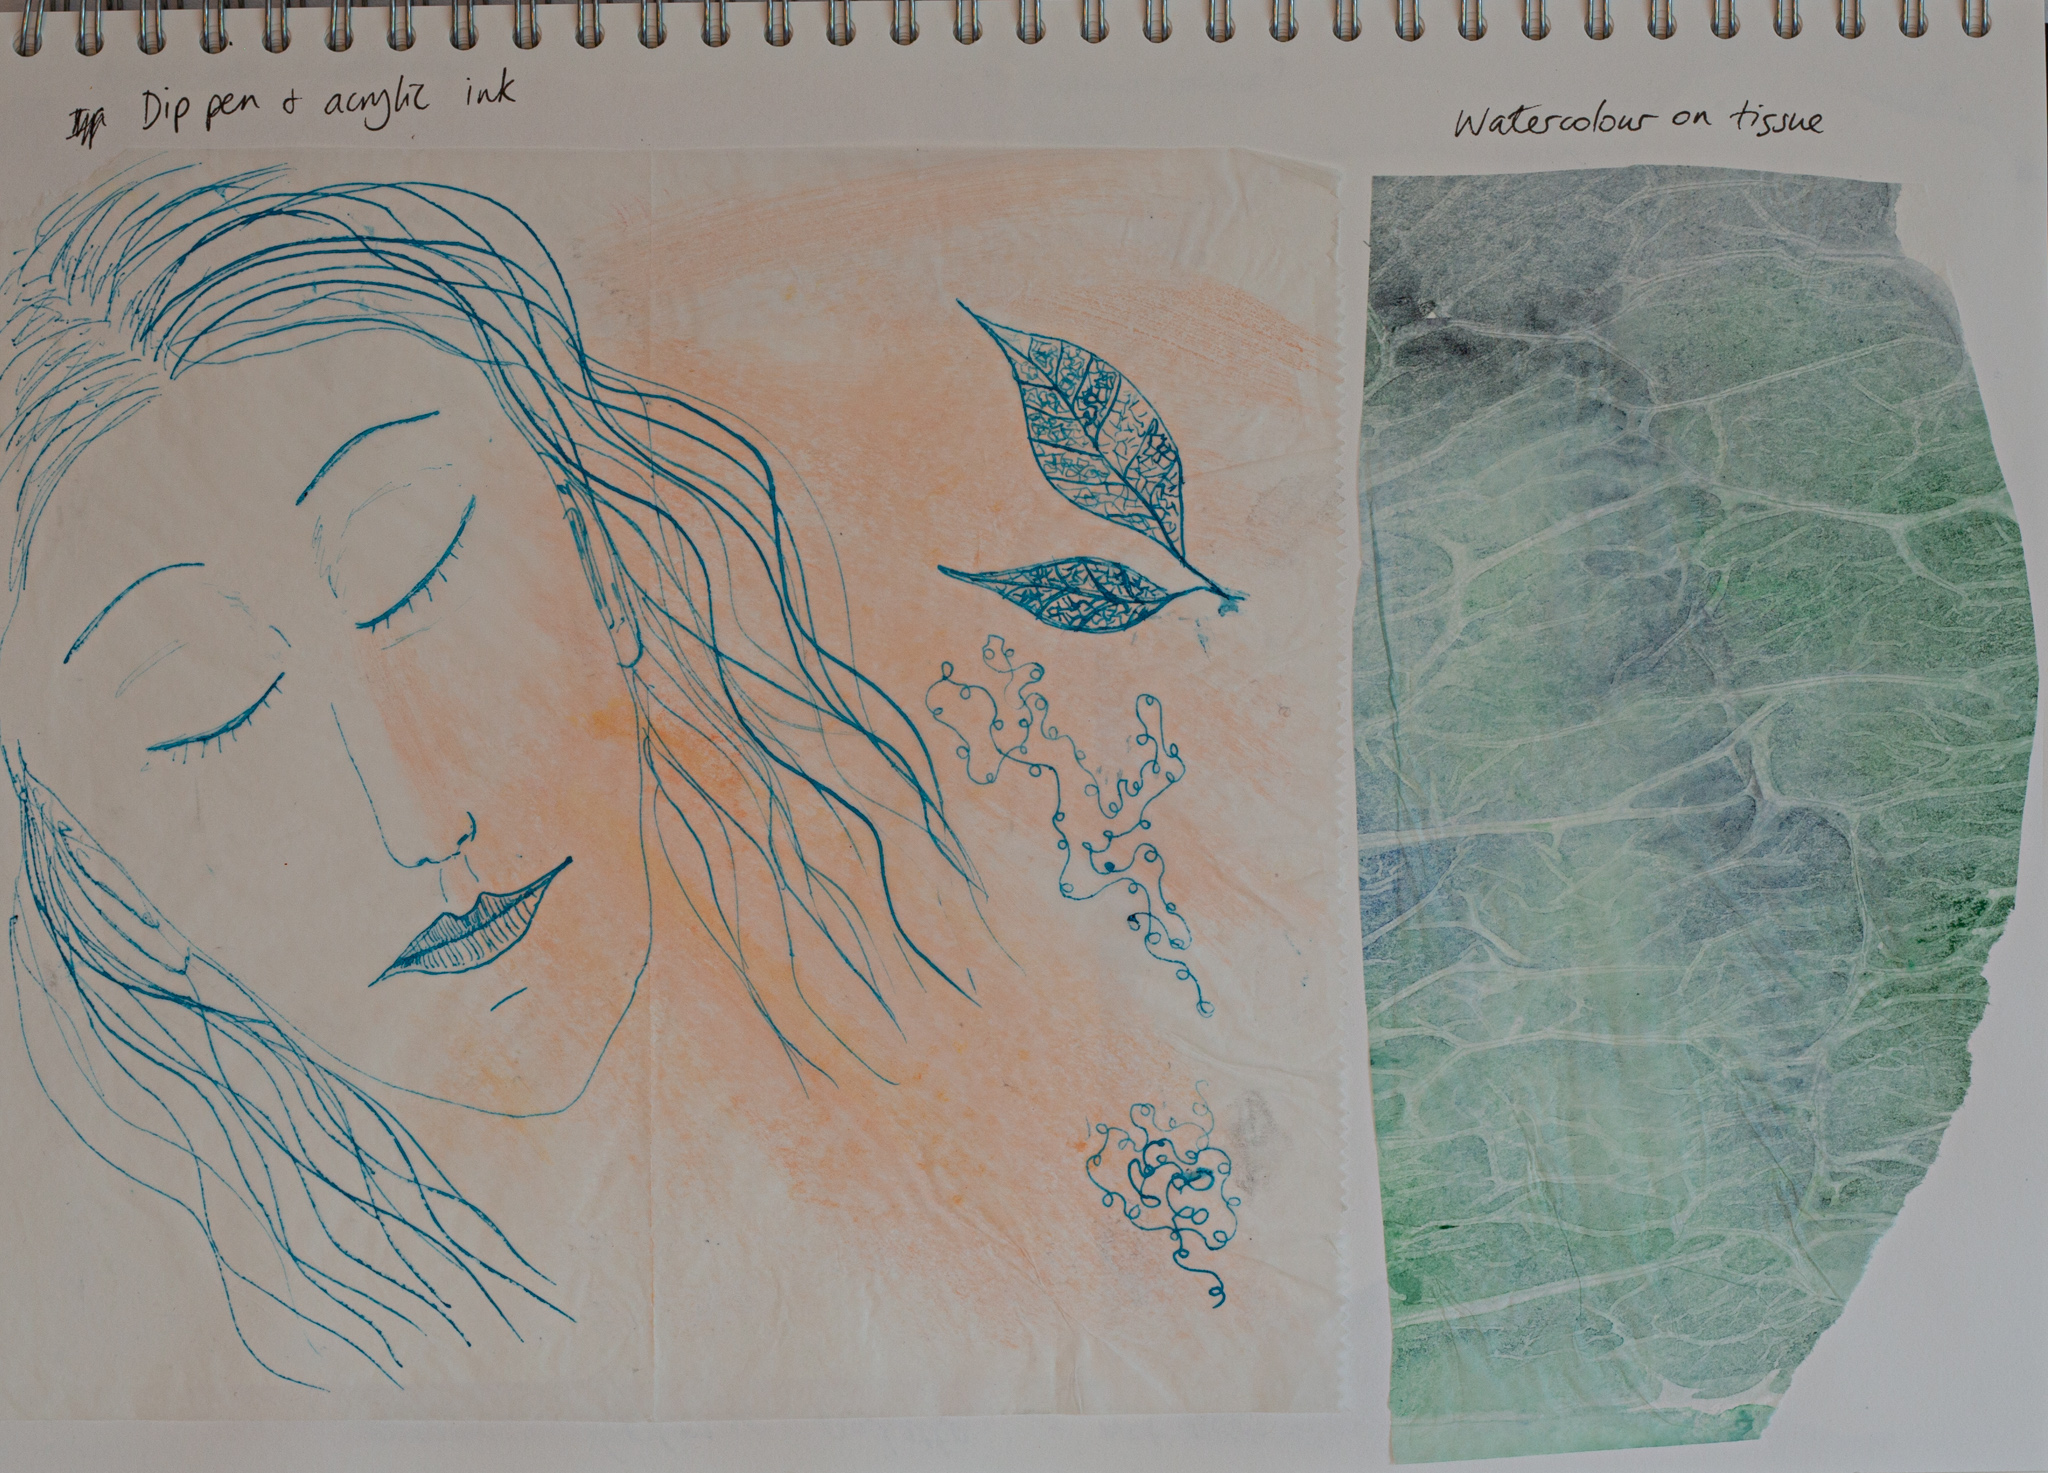 Are blue and green the best colour palette for depicting meditation? Leaf fractals work well drawn with dip pen and ink.